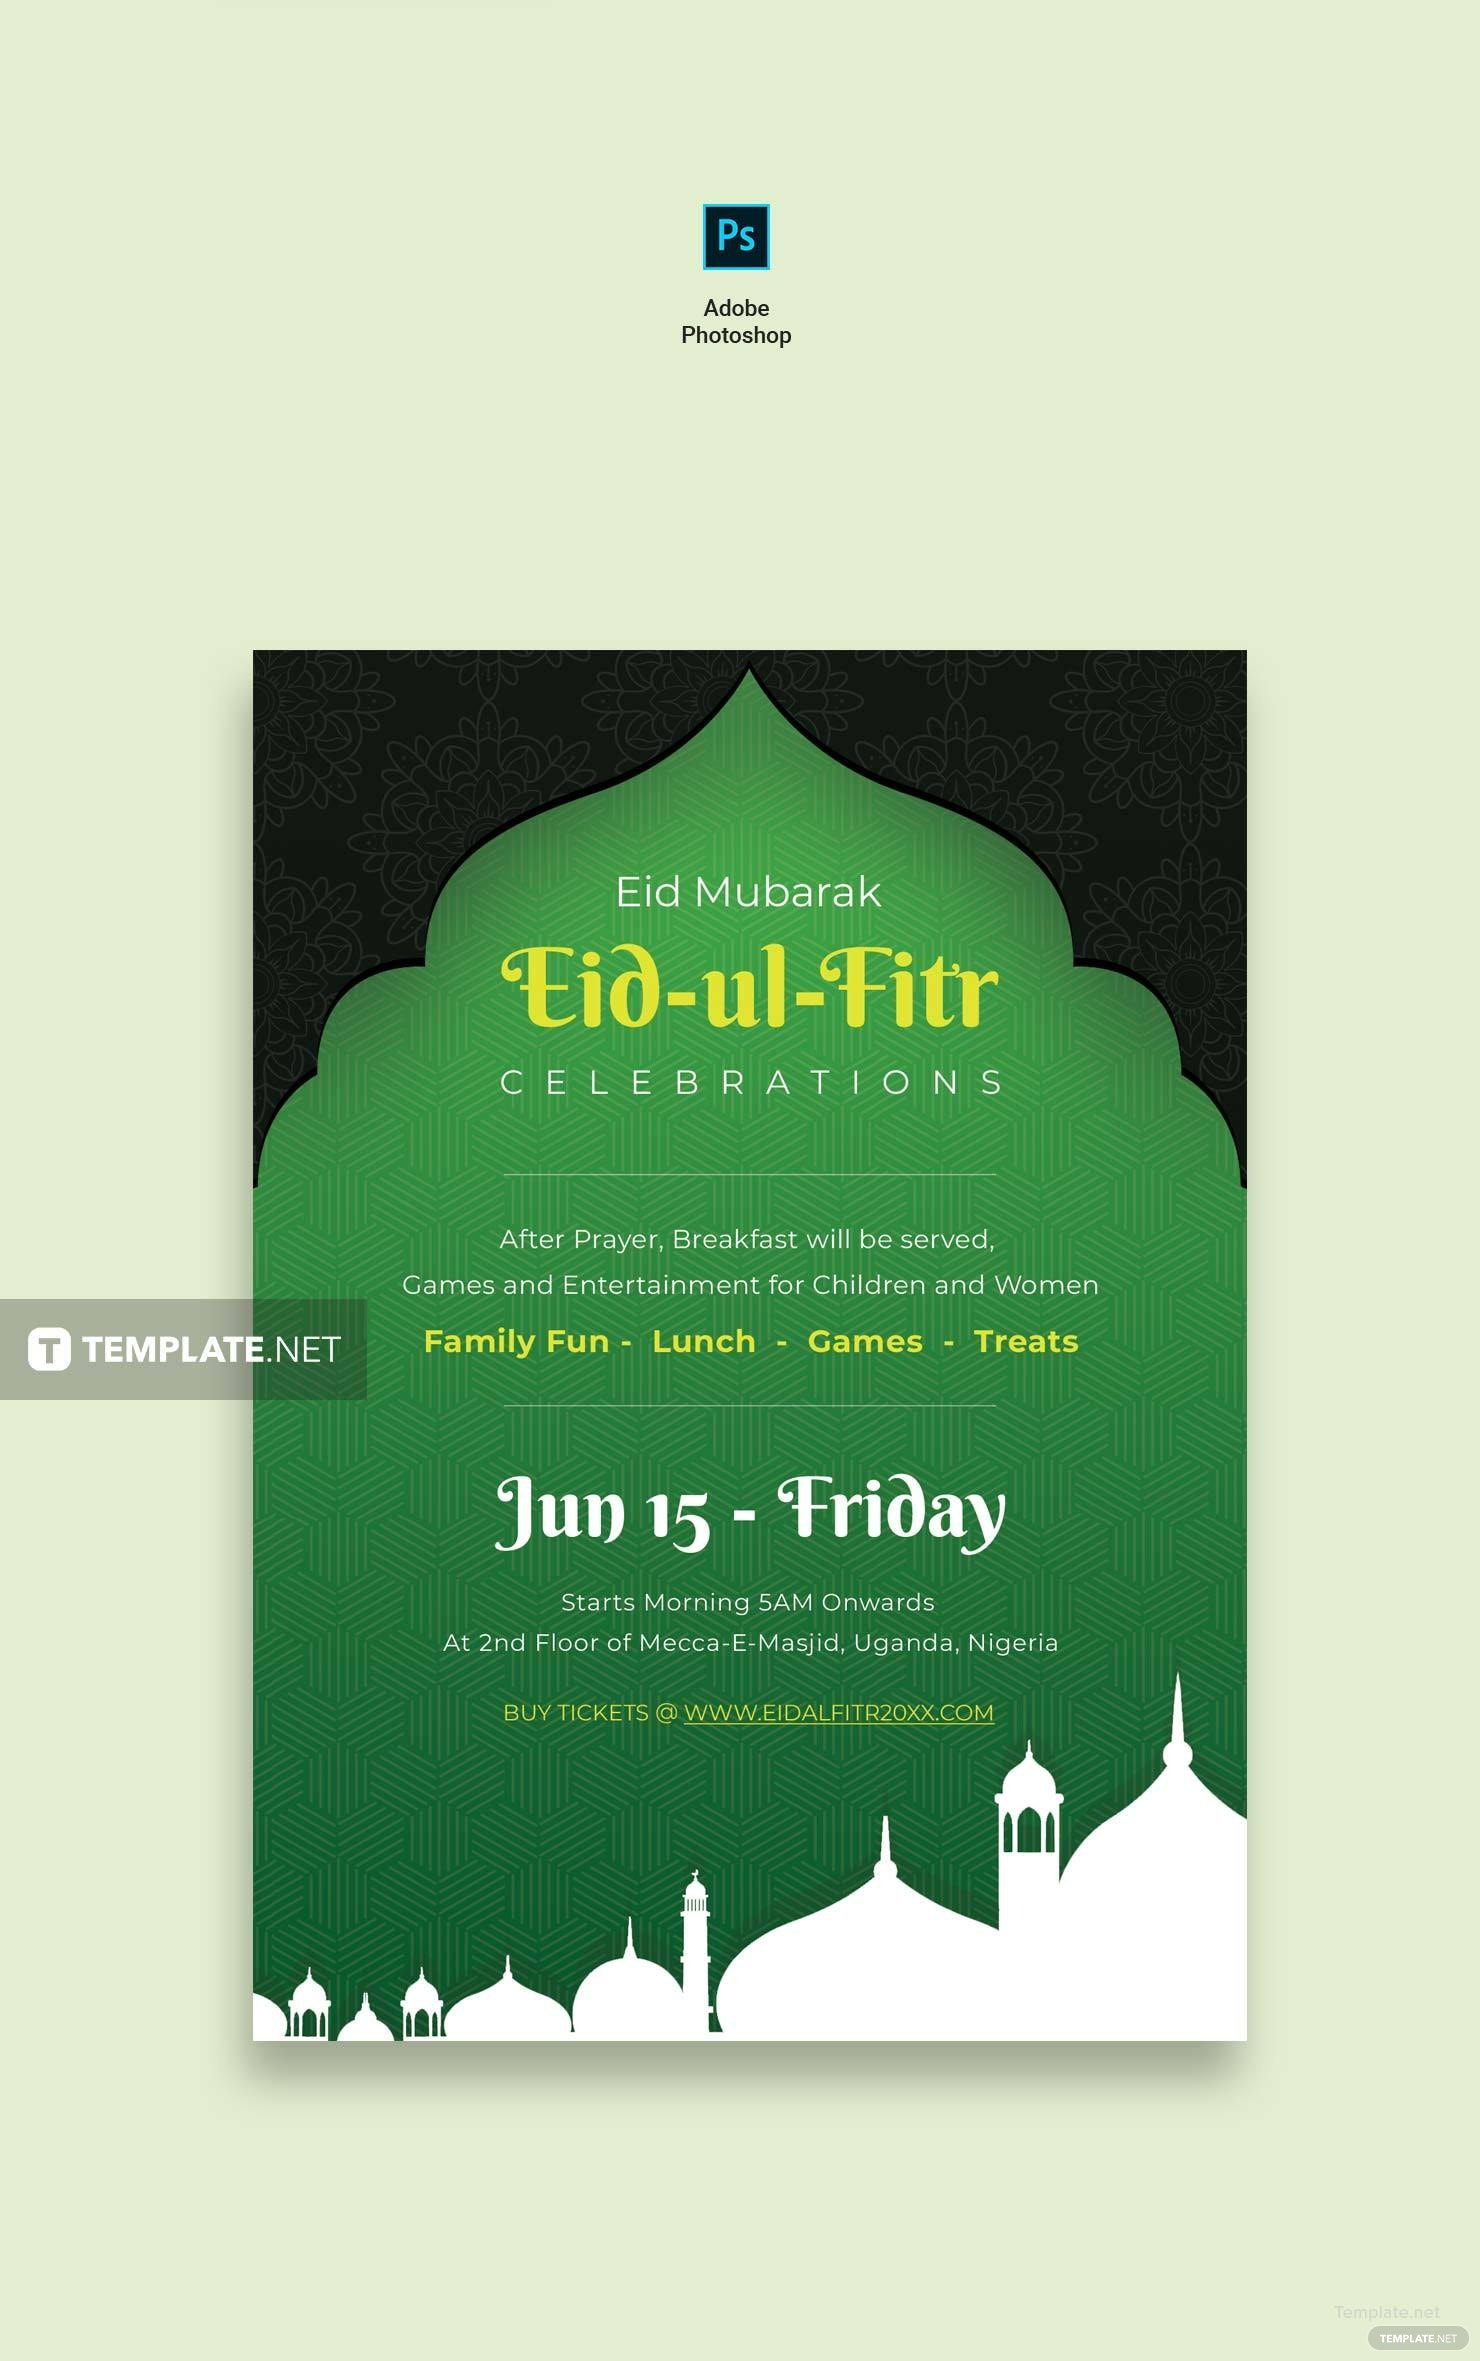 Eid ulFitr Invitation Template in Adobe Photoshop Templatenet